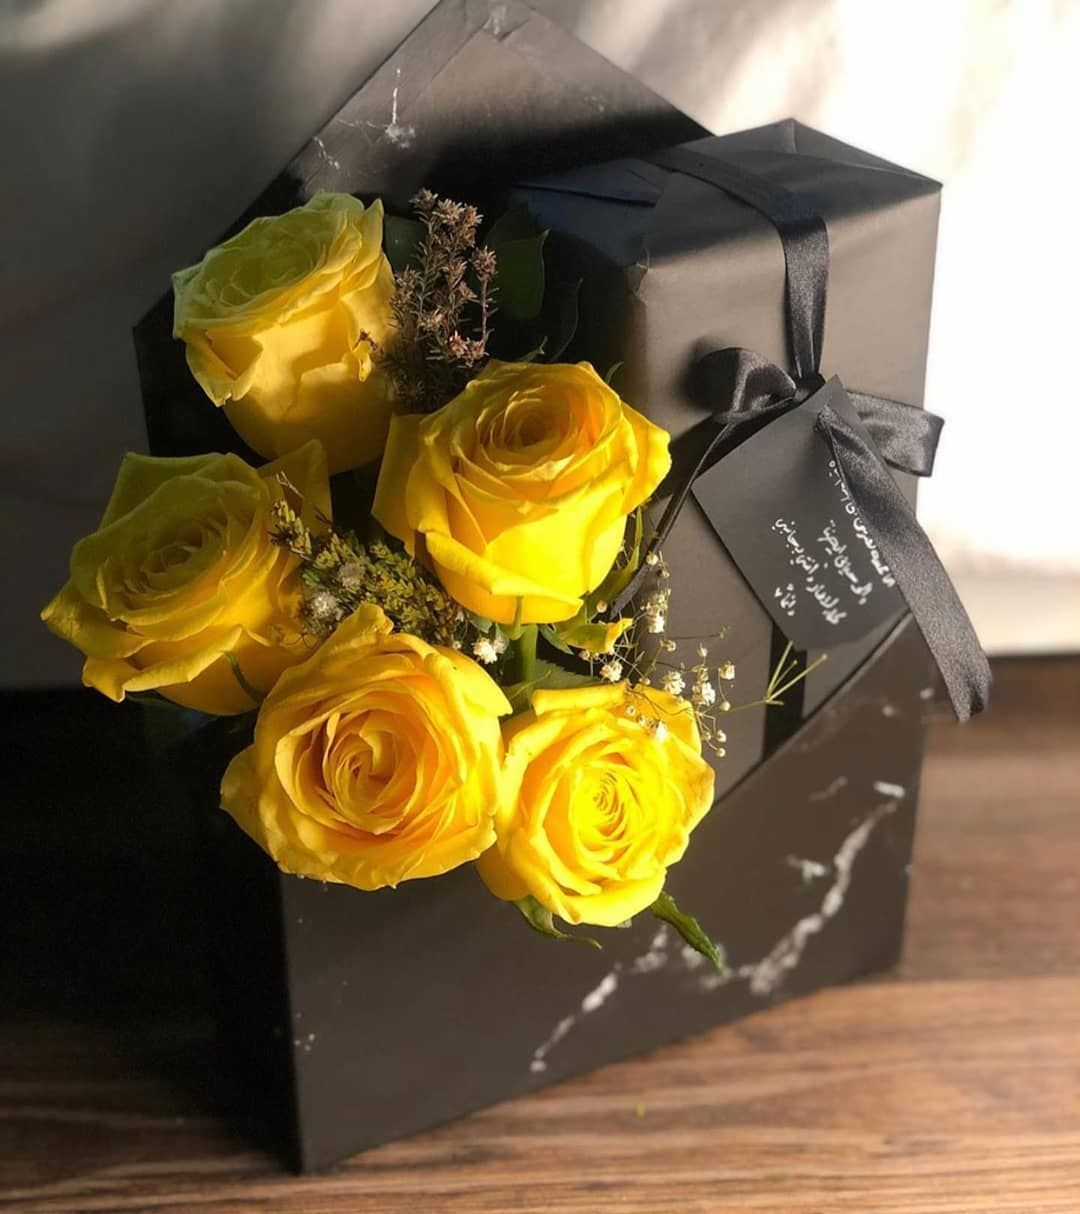 What Good News Visit Https Ift Tt 2pfel8h Find Out How Much Your Chances To Win Free Gift Win Gifts For Both Of Y Bff Birthday Gift Flower Gift Gifts